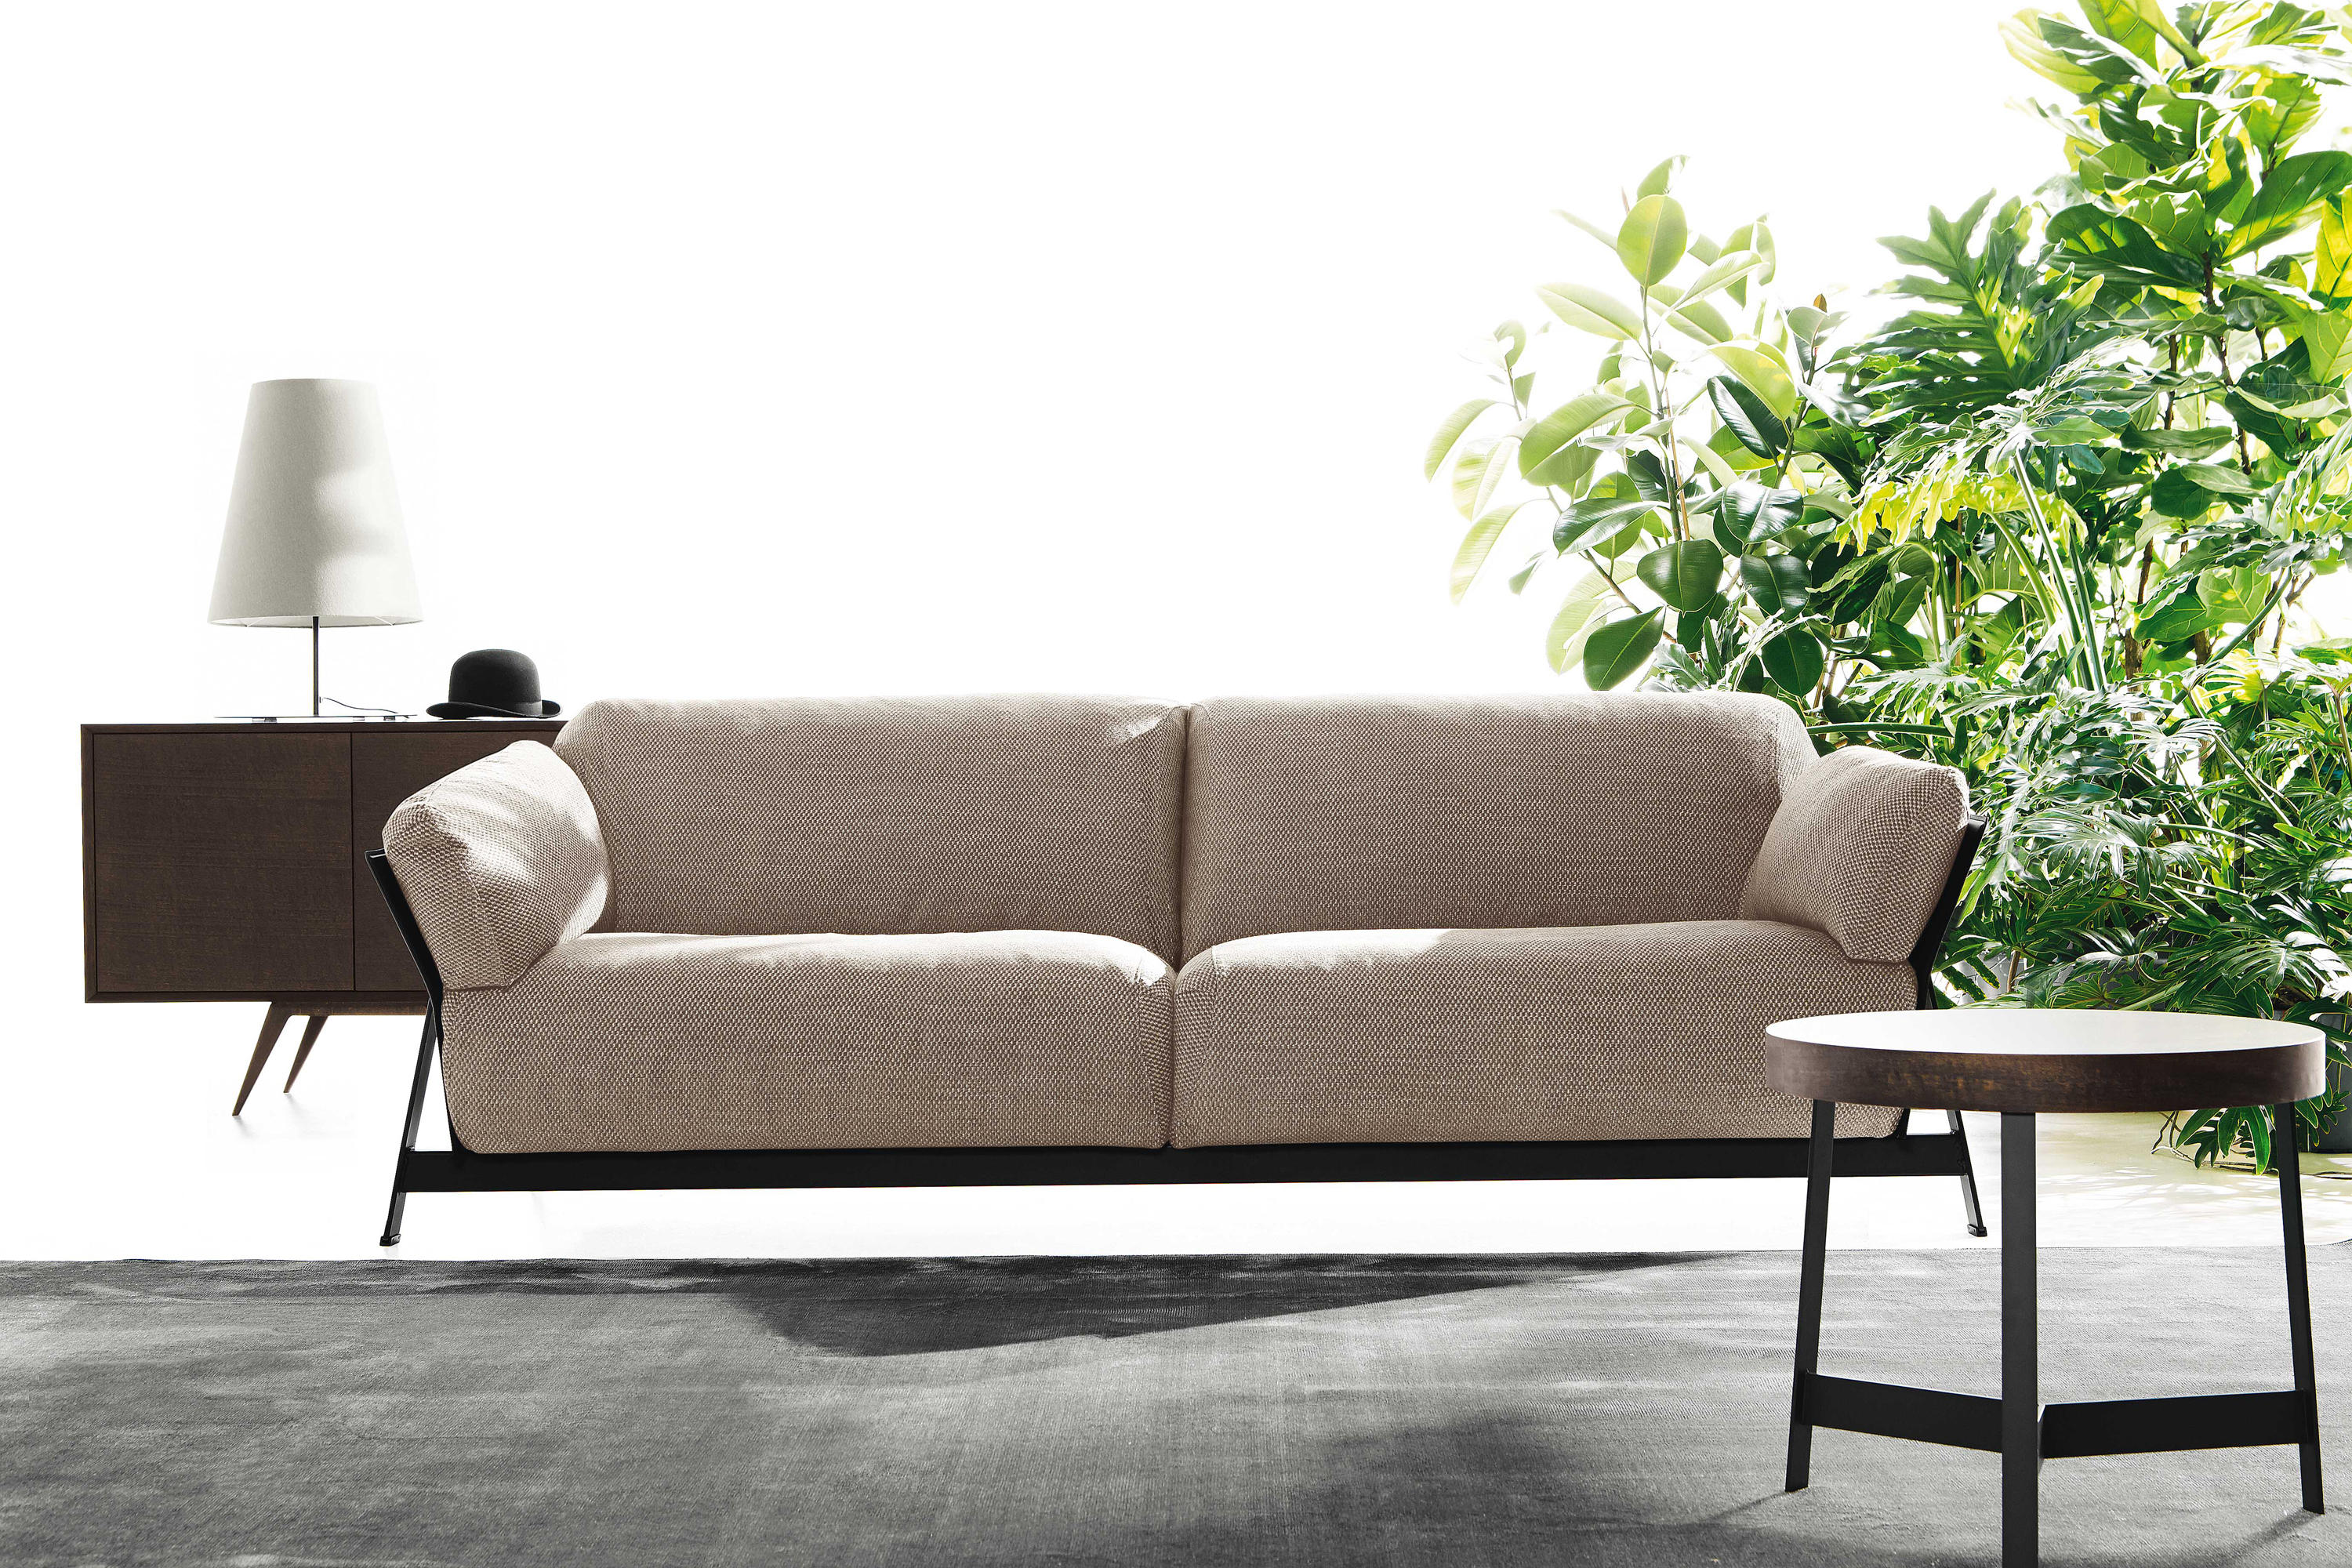 Kanaha sofa beds from ditre italia architonic for Prostoria divani